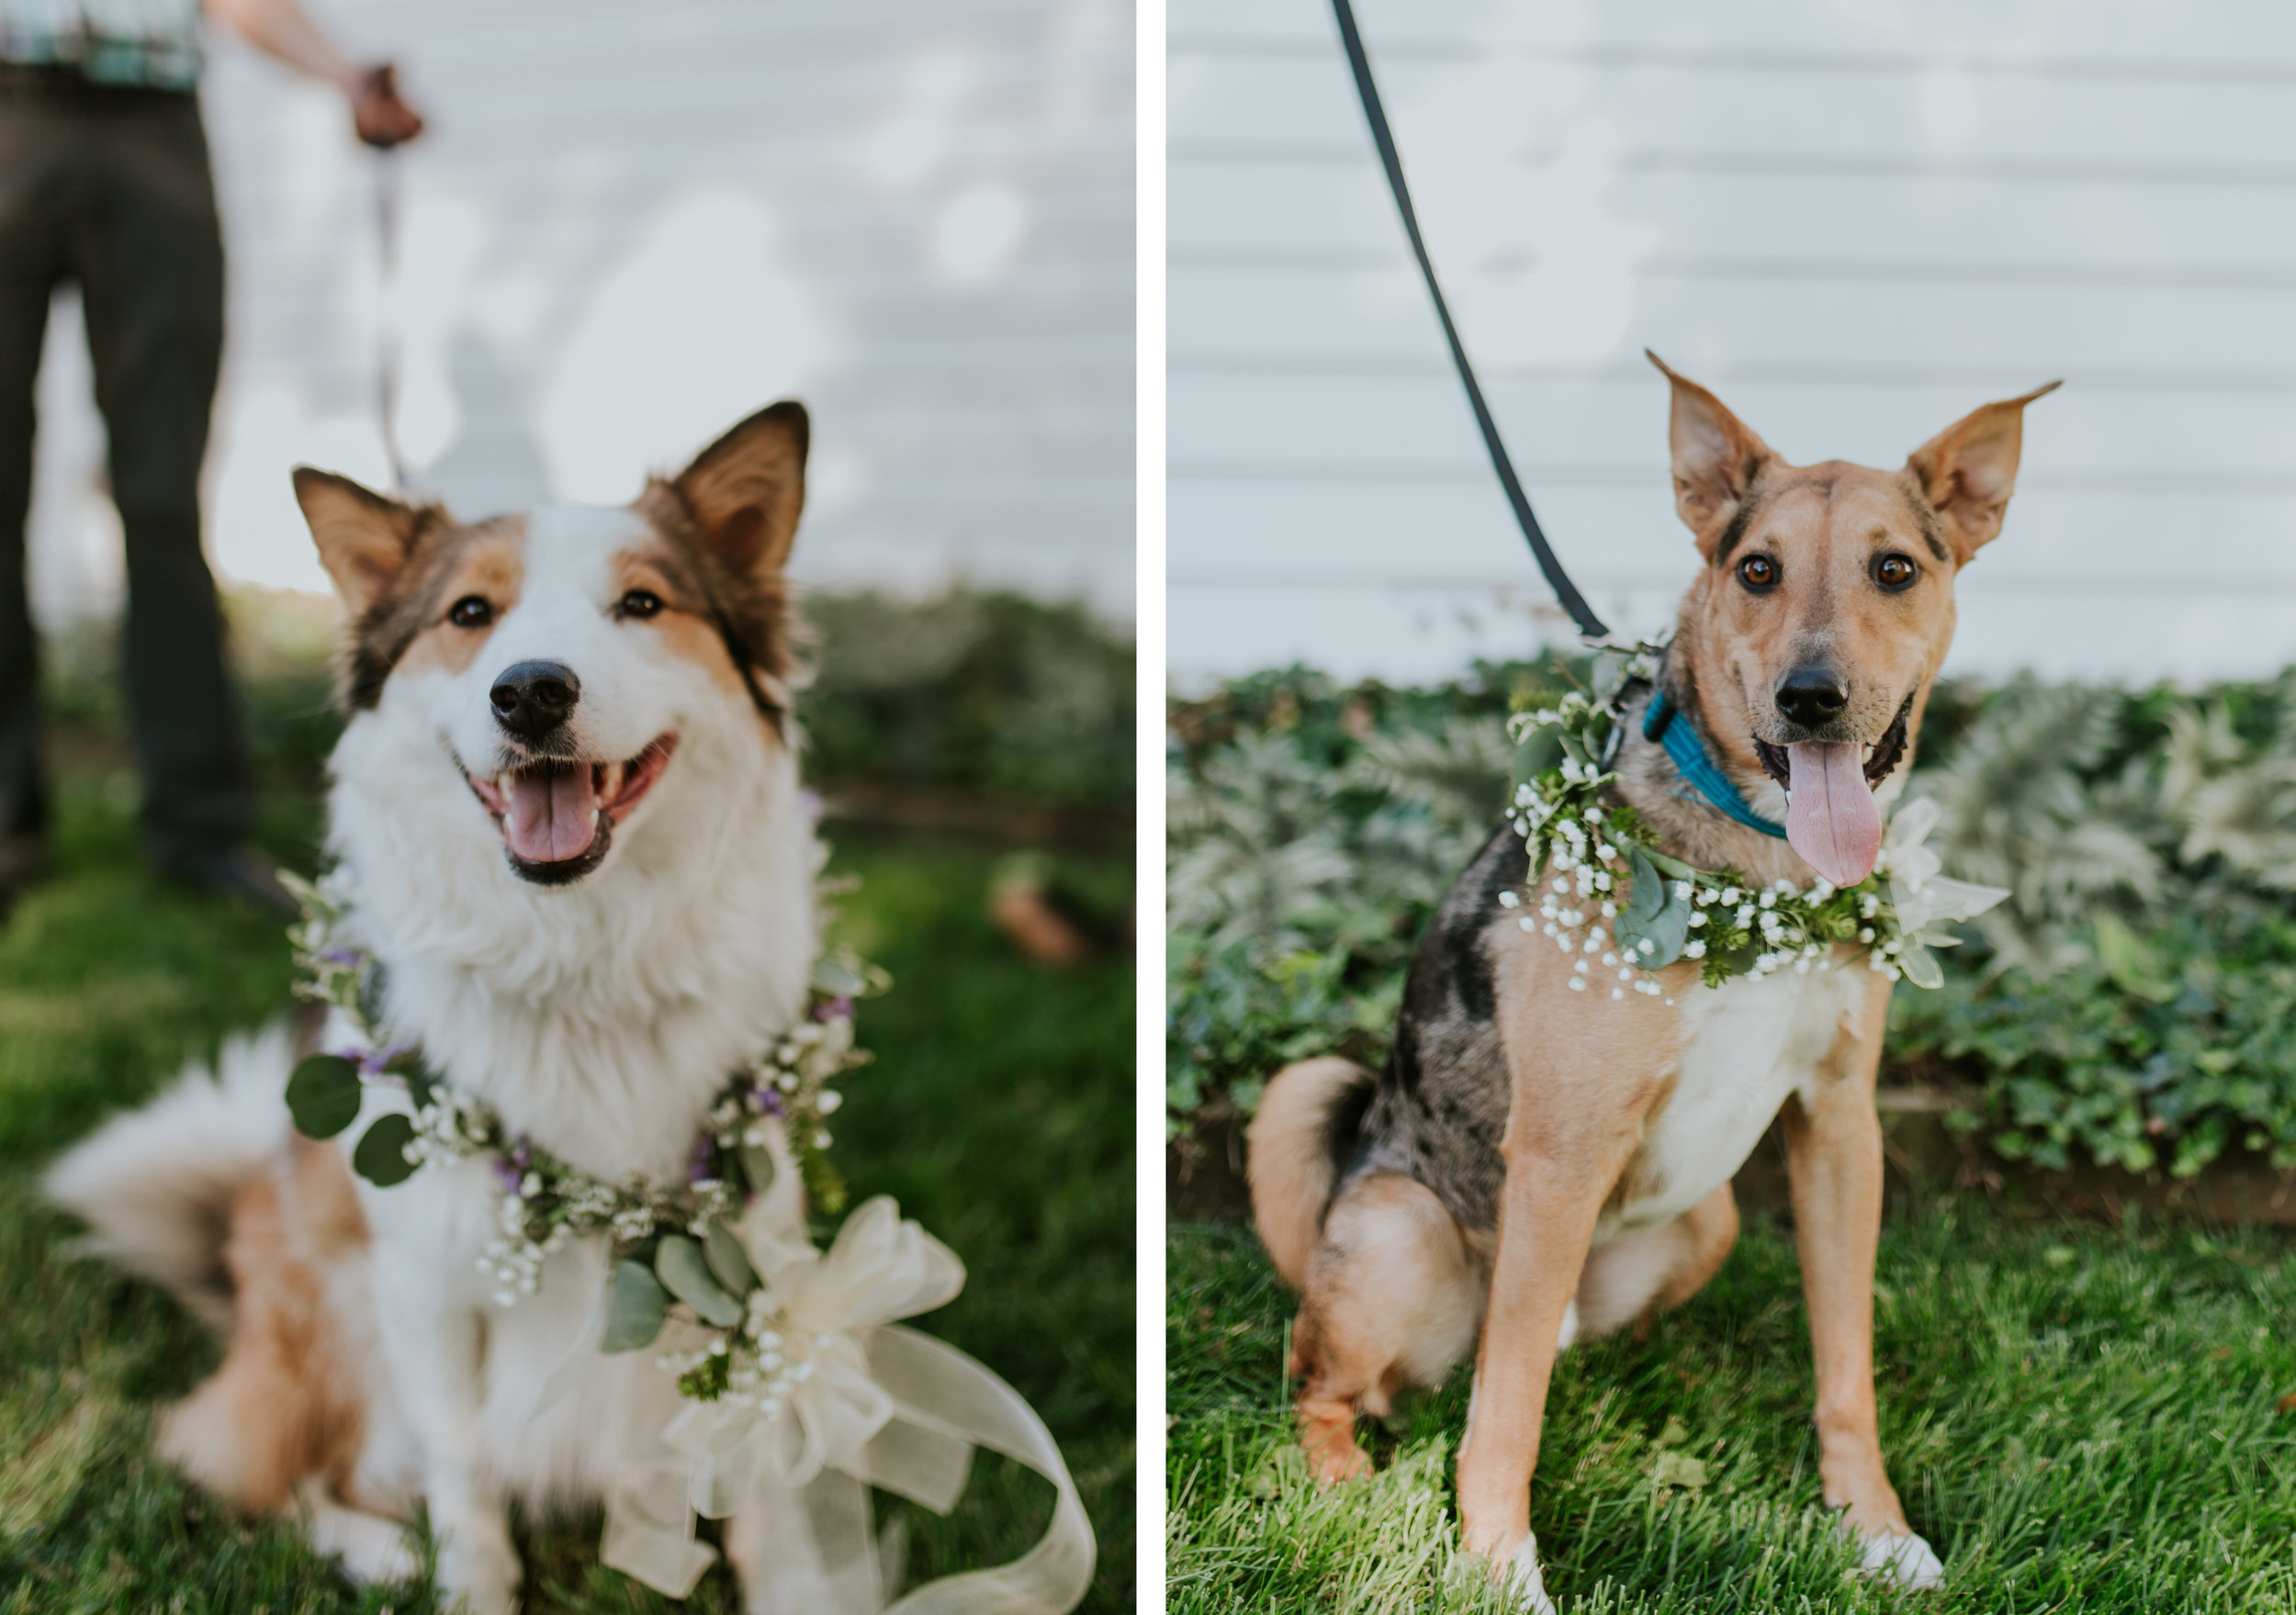 lola-grace-photography-dog-intimate-wedding-21.jpg